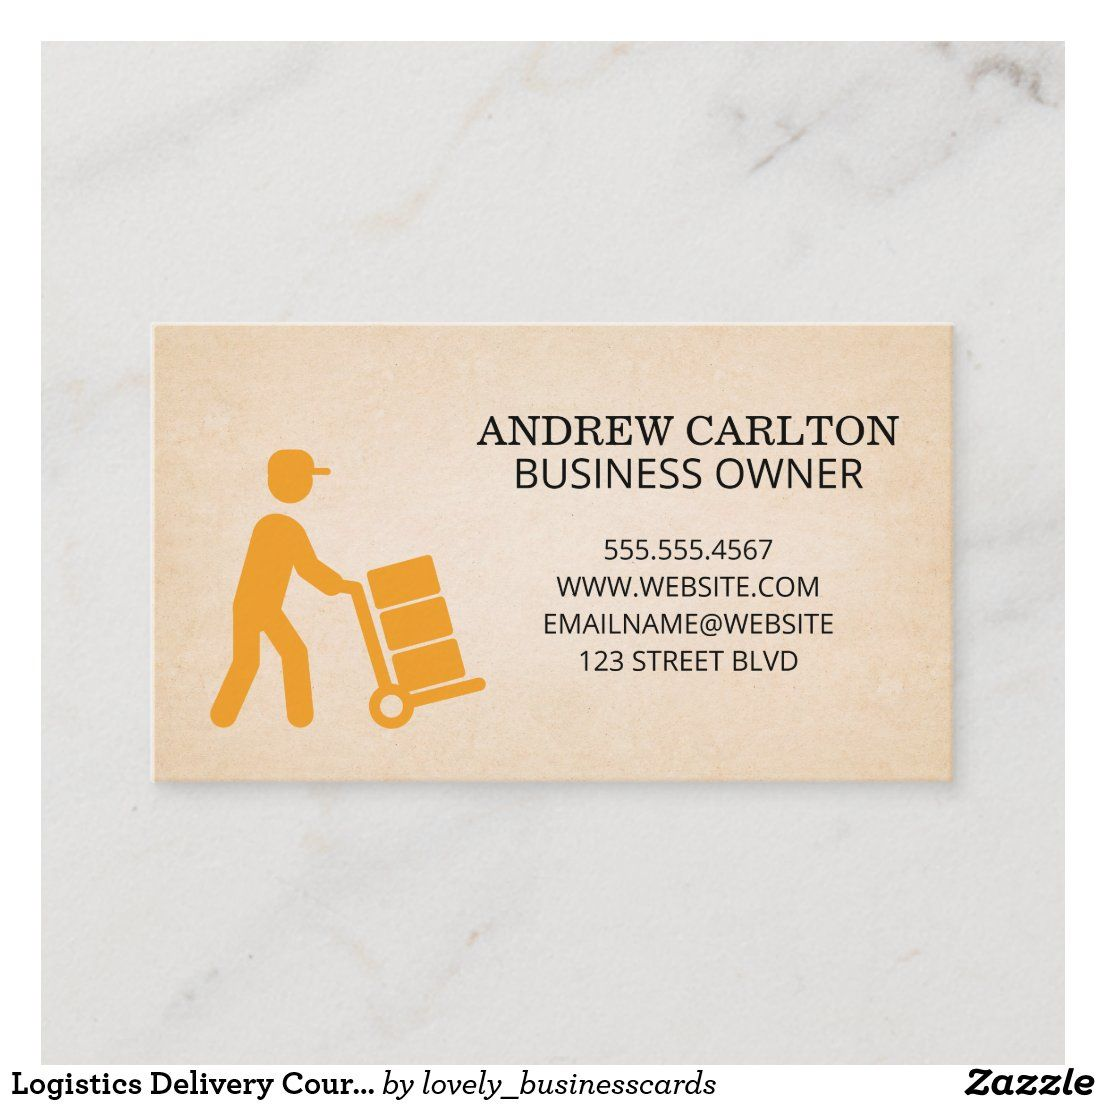 Logistics Delivery Courier Business Card Zazzle Com In 2021 Small Business Cards Professional Business Cards Business Card Design